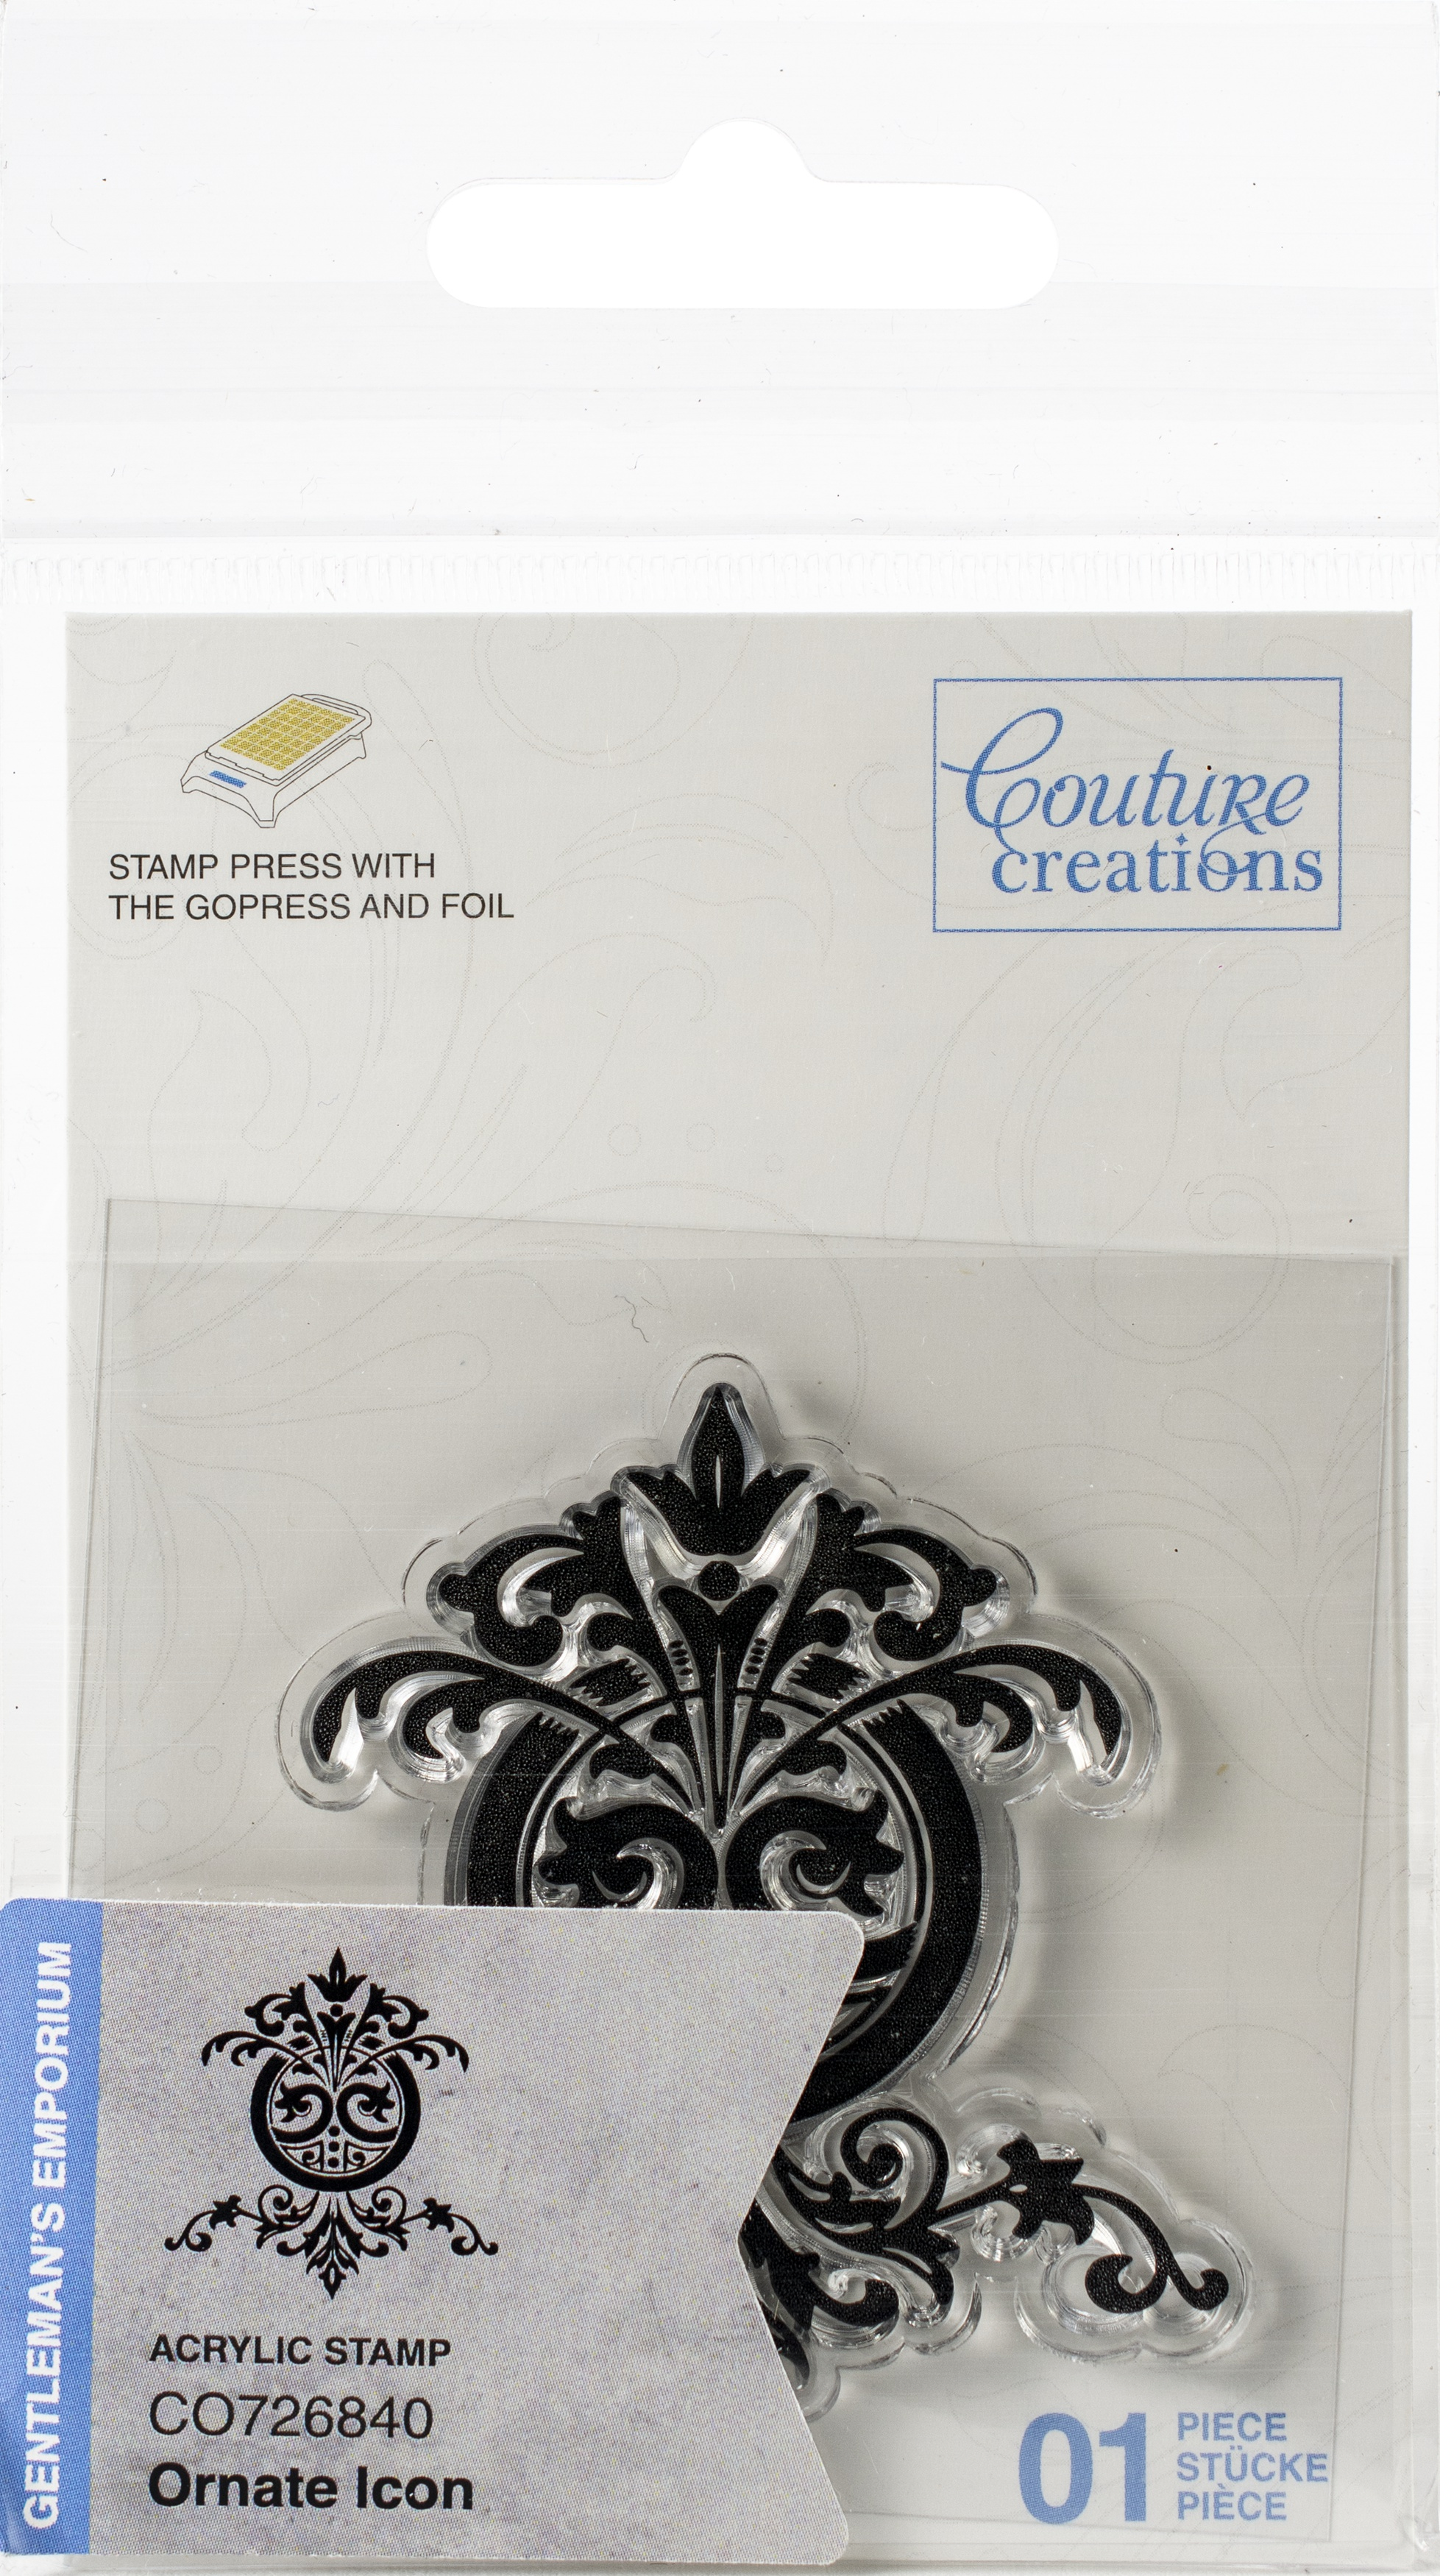 Couture Creations Gentlemans Emporium Mini Stamp-Ornate Icon 1.9X1.9